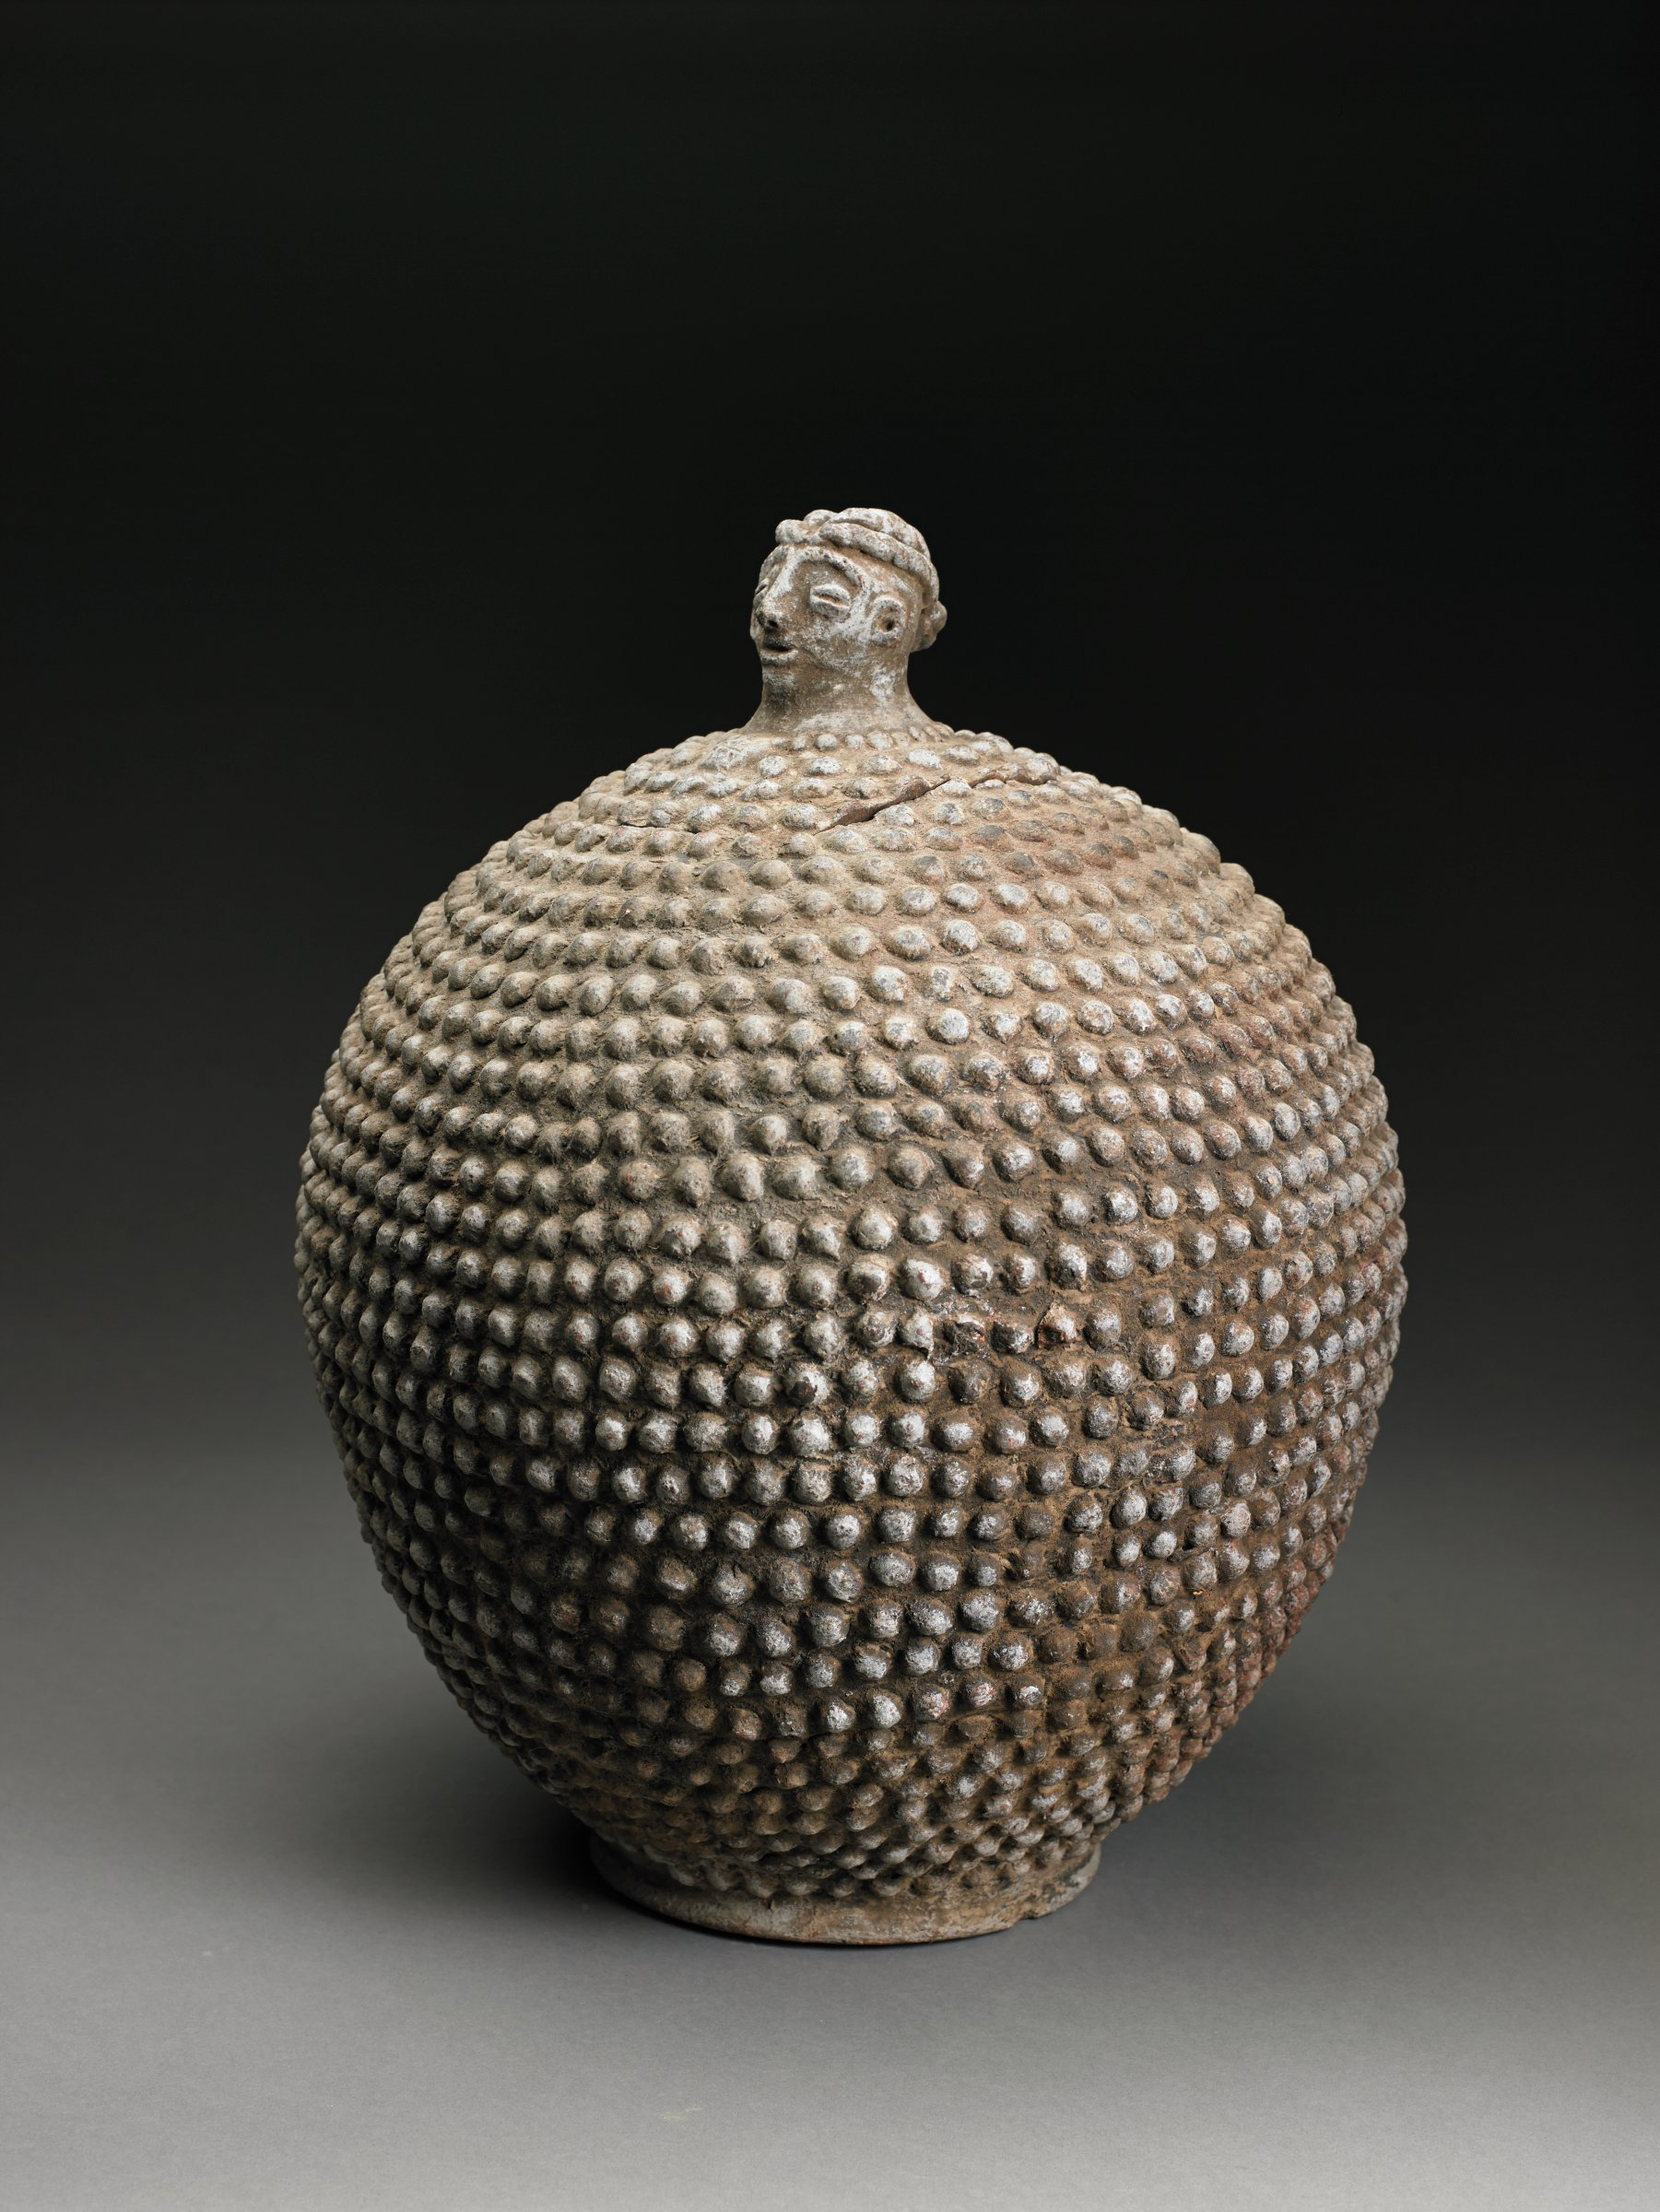 Round, brownish, footed vessel has cut-in lid with knob in form of modeled human head. Entire vessel and lid covered with raised knobs and whitish pigment.